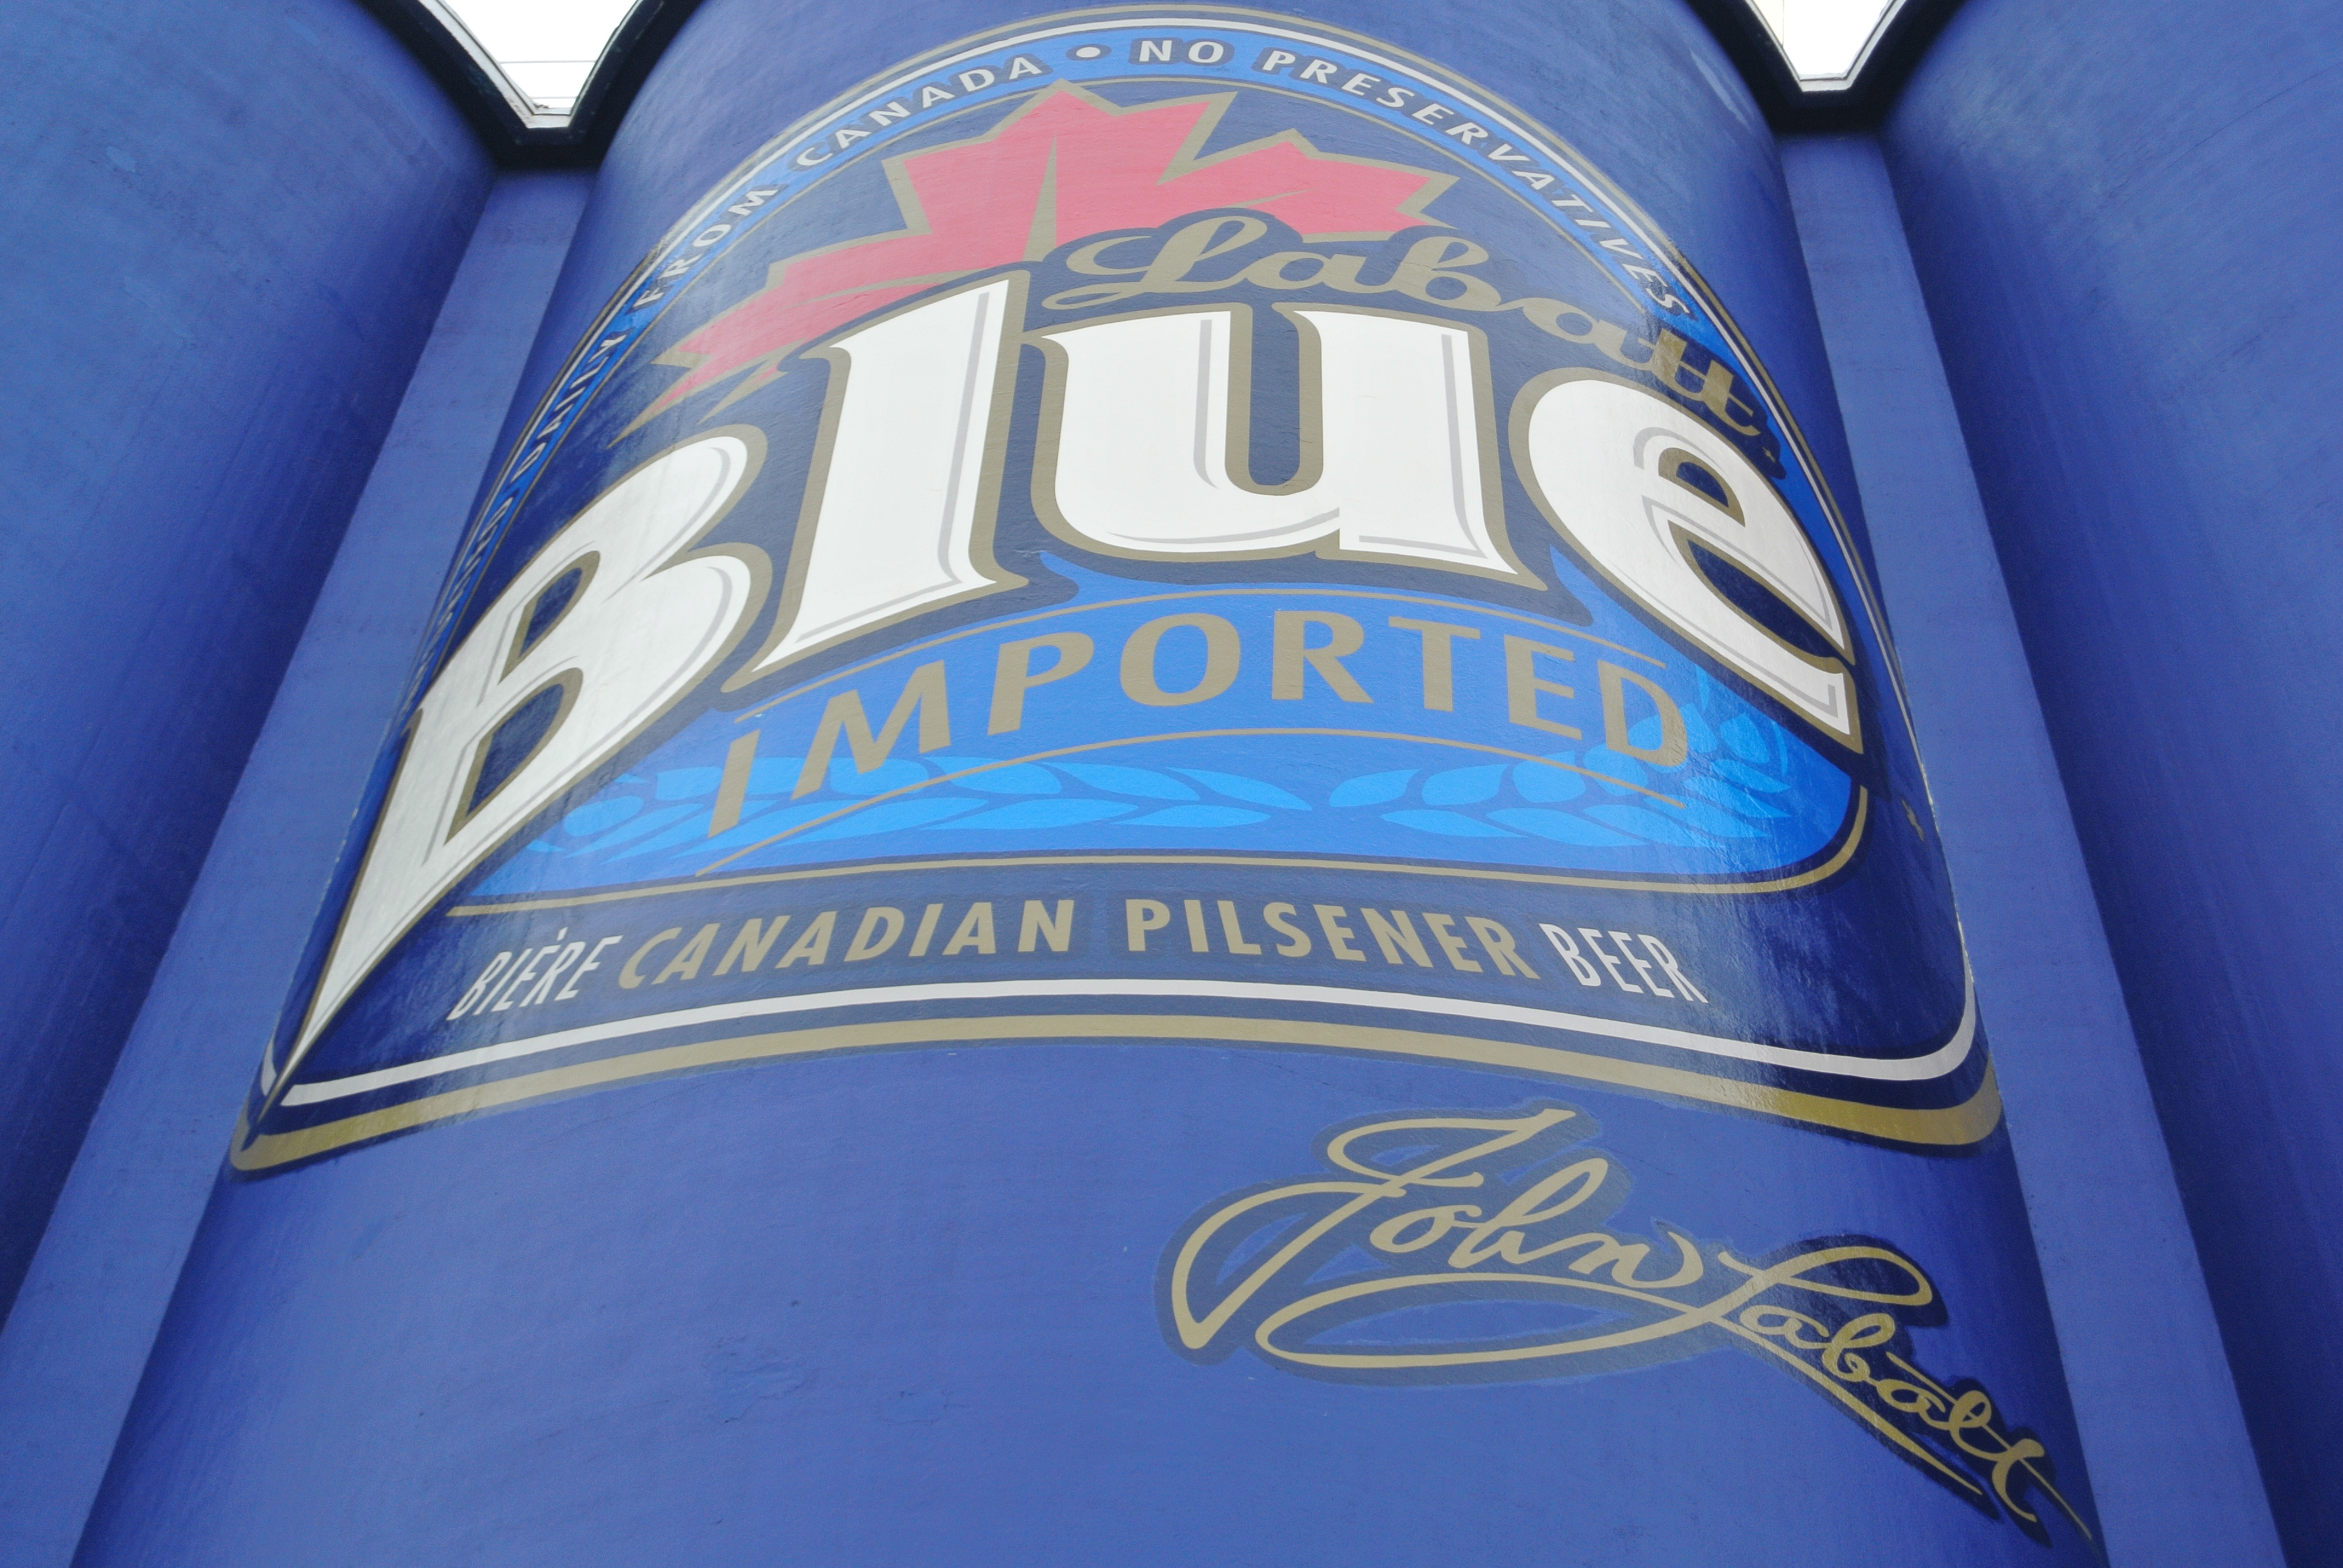 World\'s Largest Six-Pack of Beer in Buffalo, NY? – FAB News